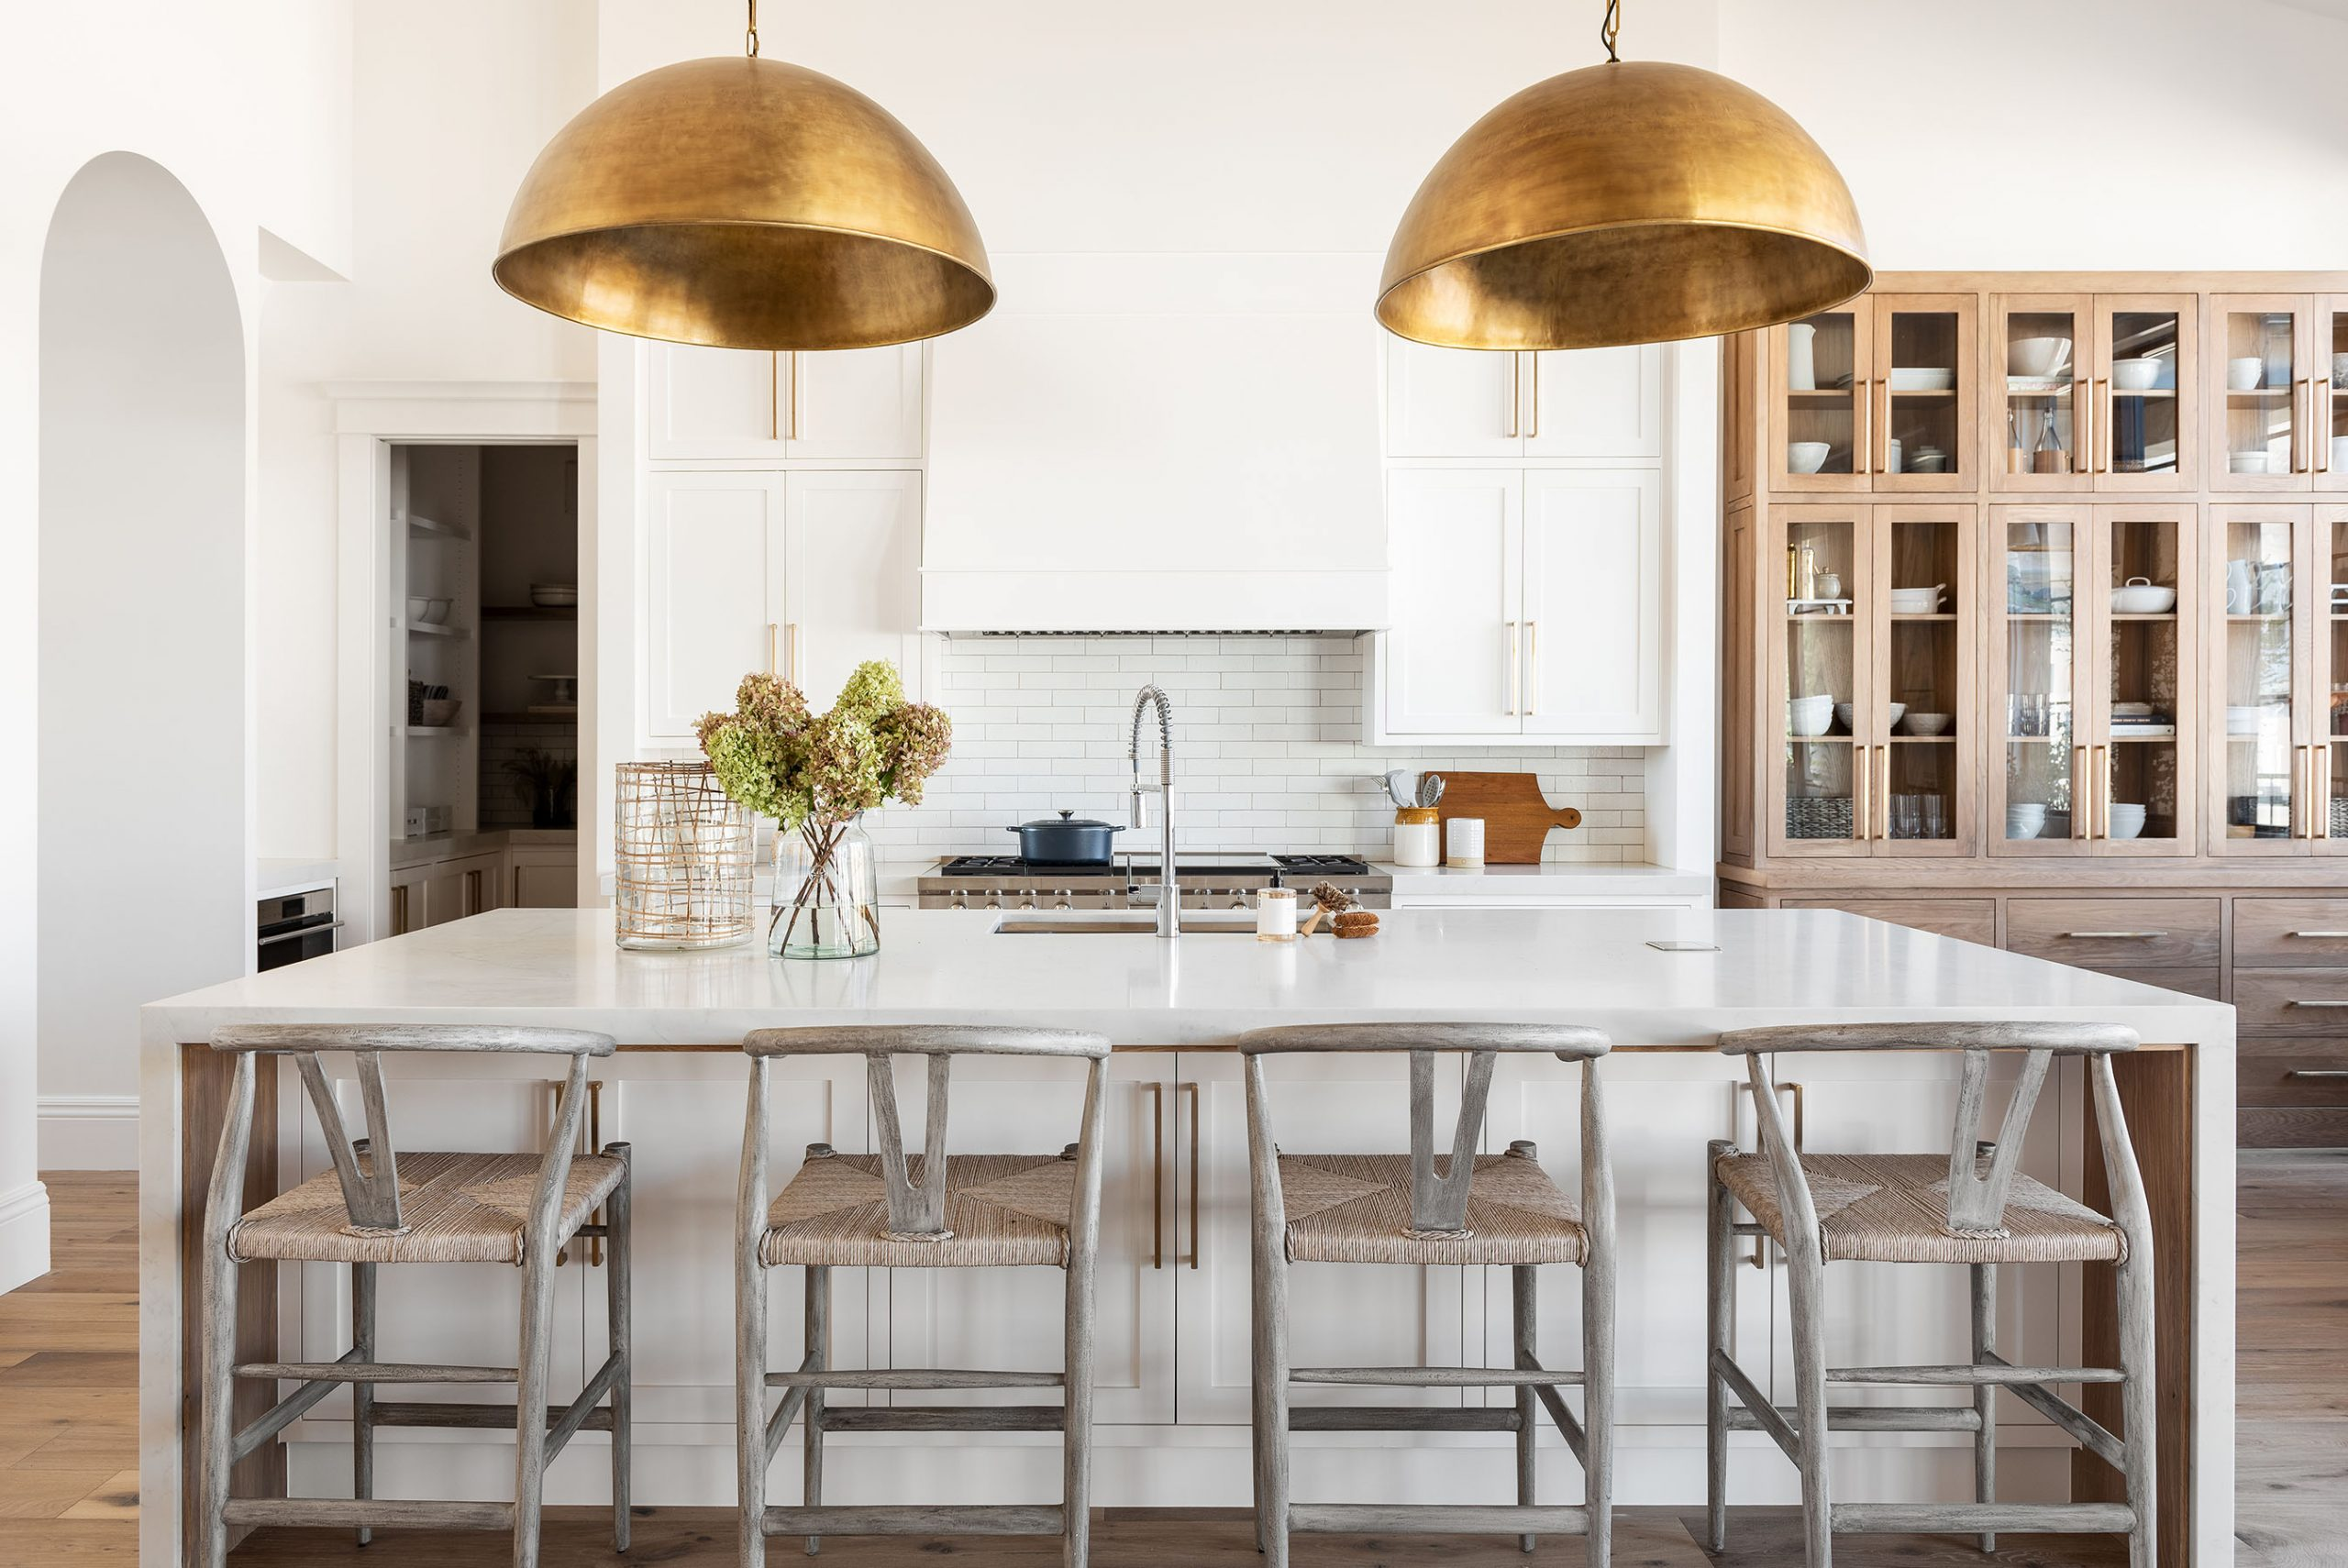 The Sunset House: Great Room, Kitchen & Dining Nook